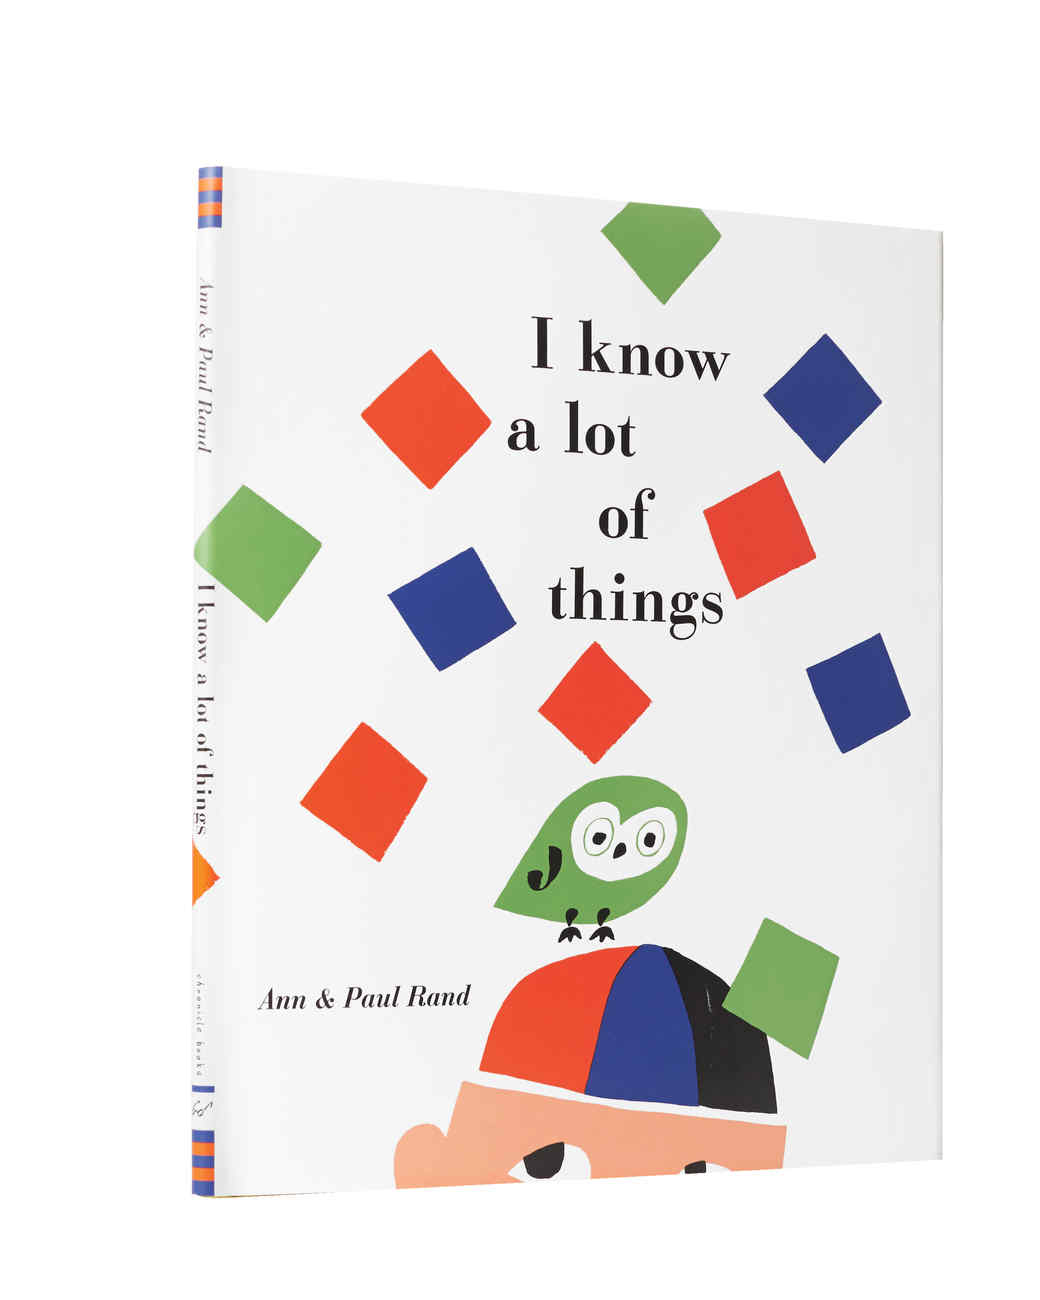 i-know-a-lot-of-things-book-014-d111168.jpg